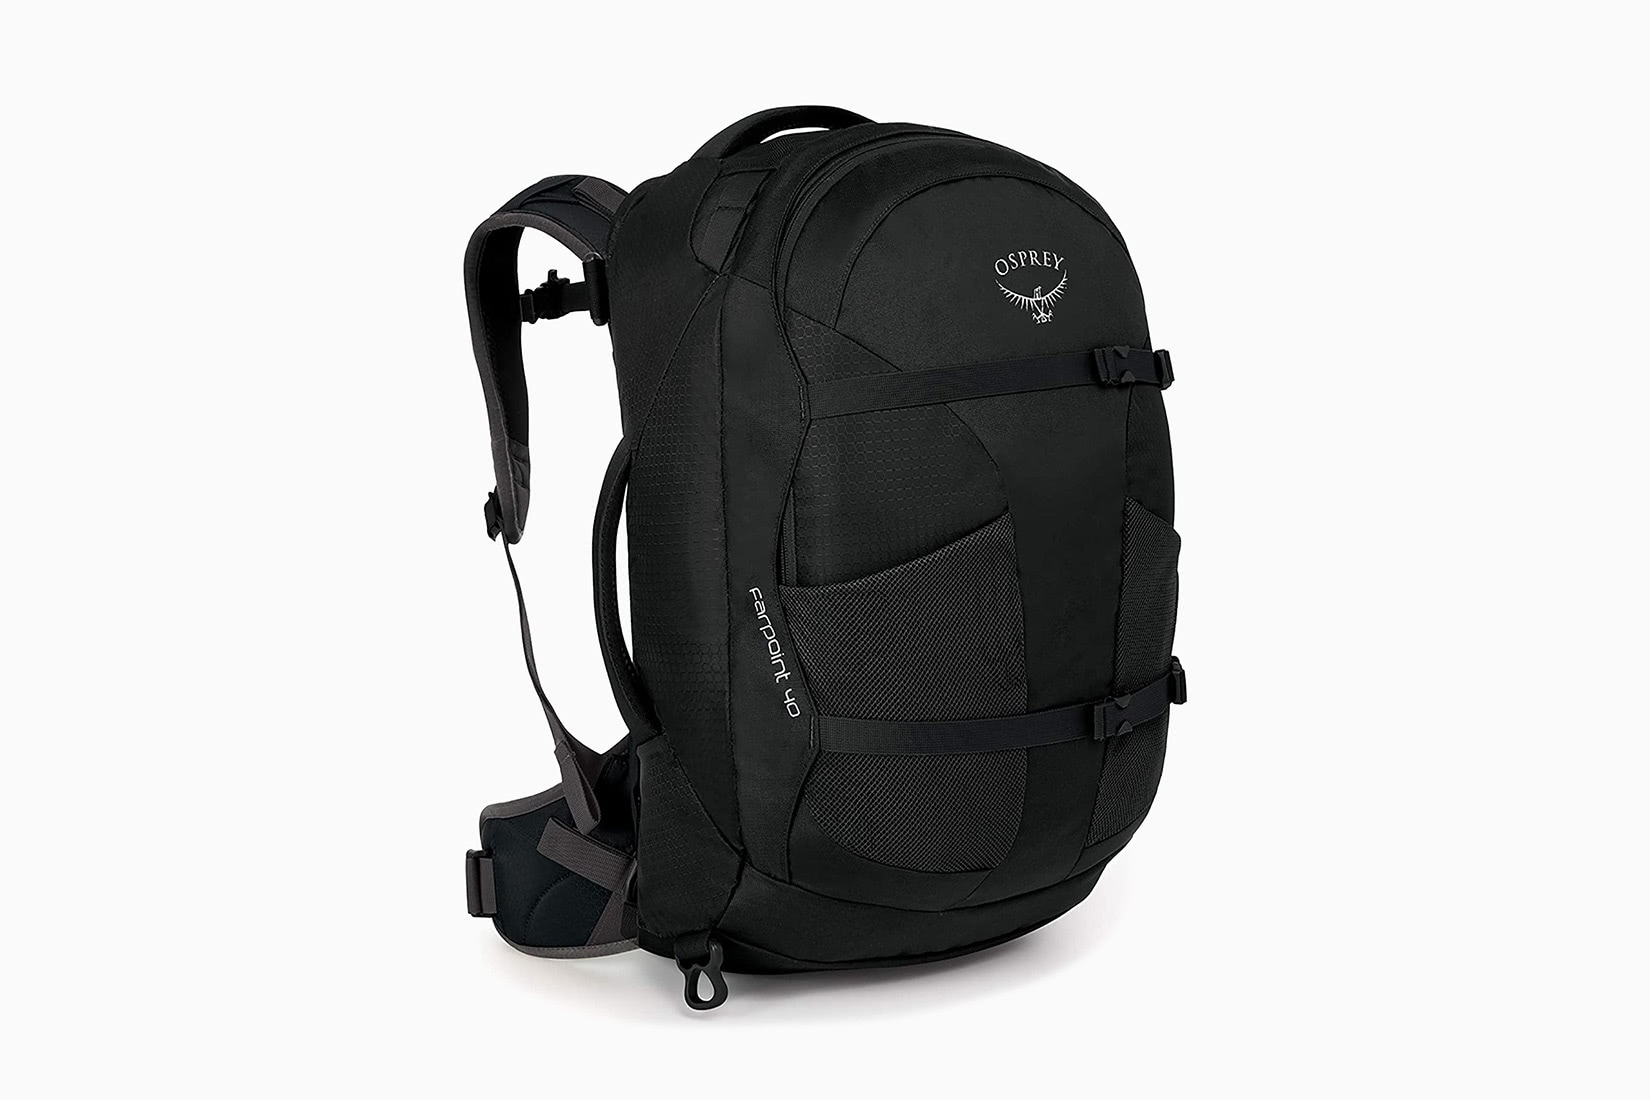 best travel backpack osprey farpoint 40 - Luxe Digital